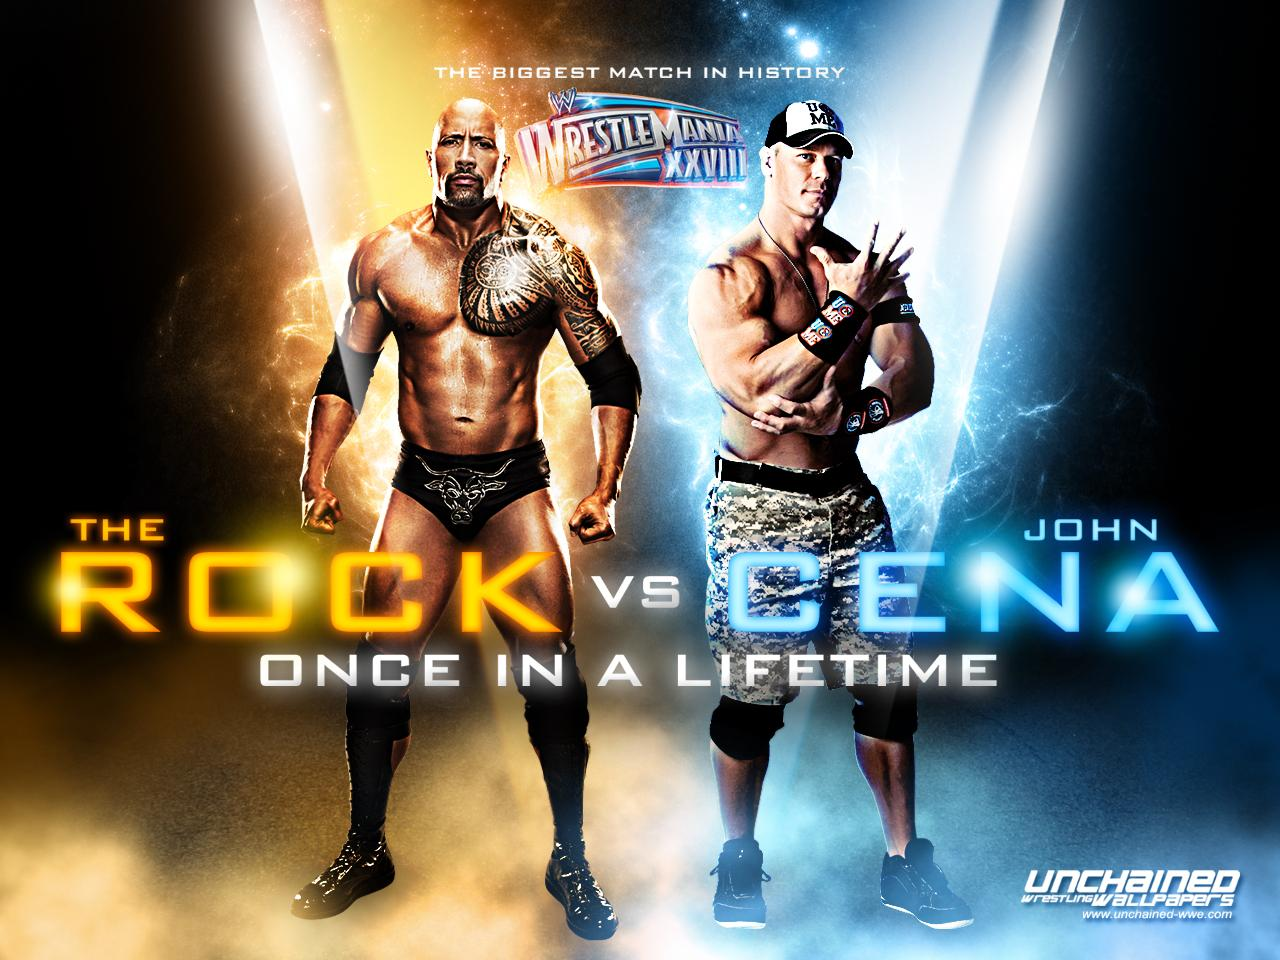 WWE image Wrestlemania 28:The Rock vs John Cena HD wallpapers and